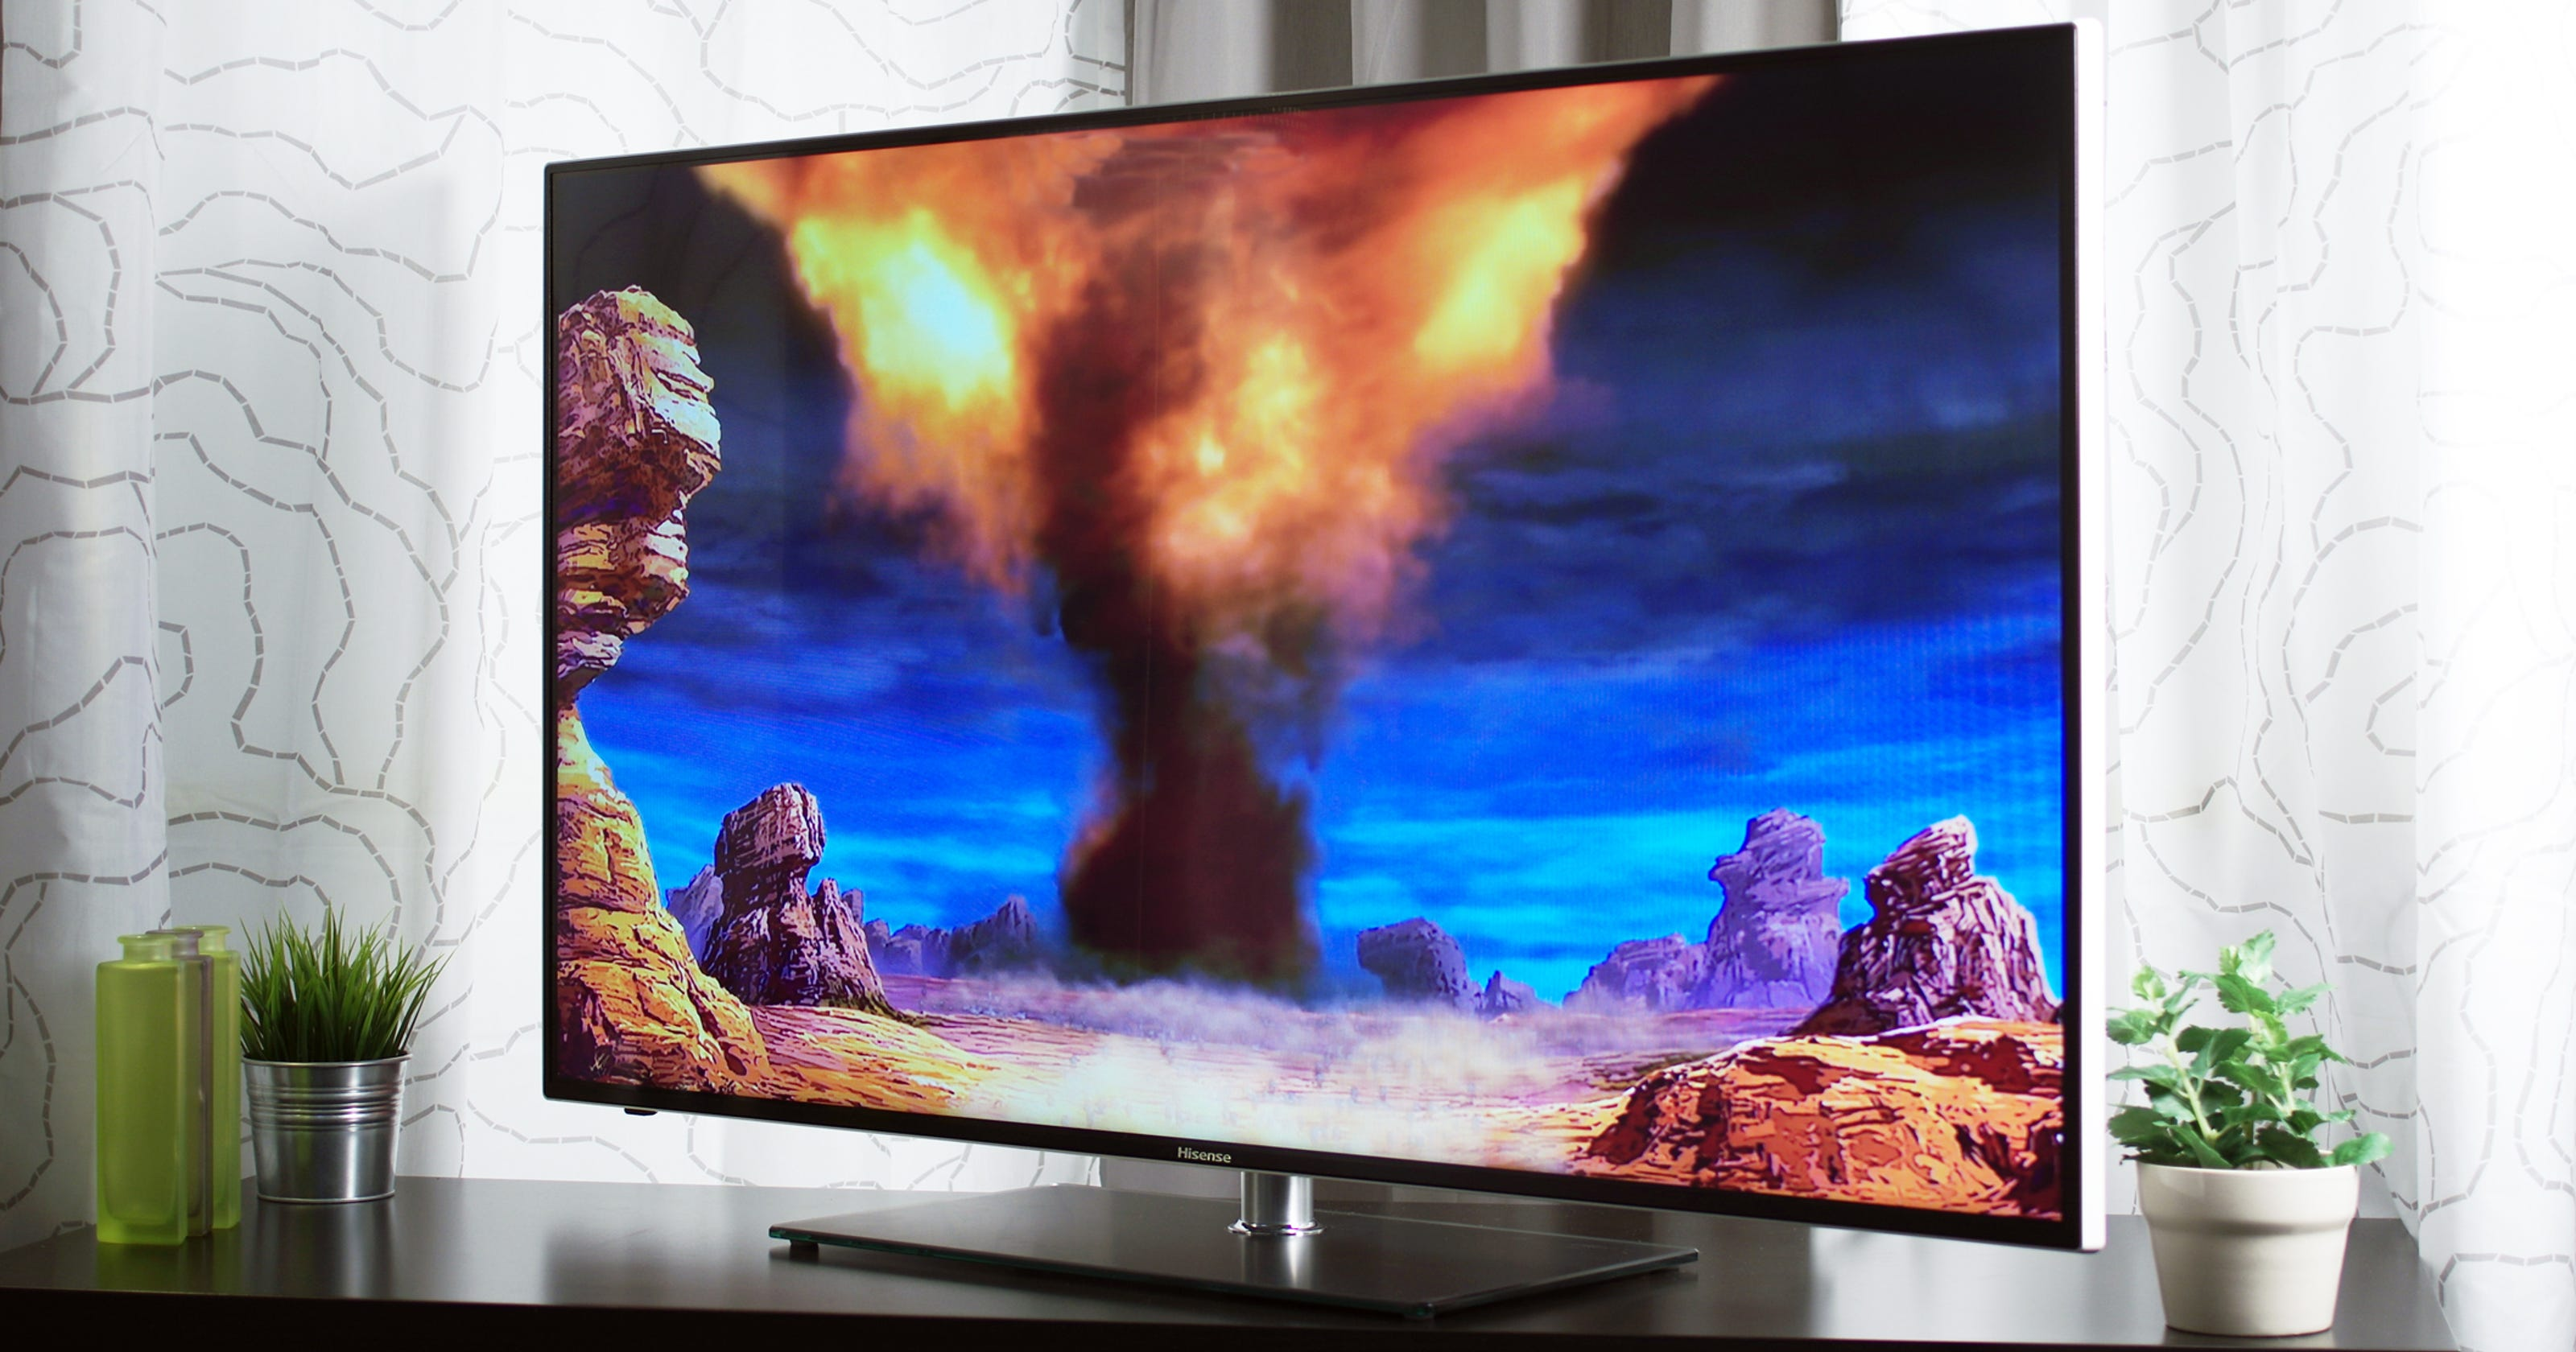 Despite smart features, Hisense TV is not a smart buy